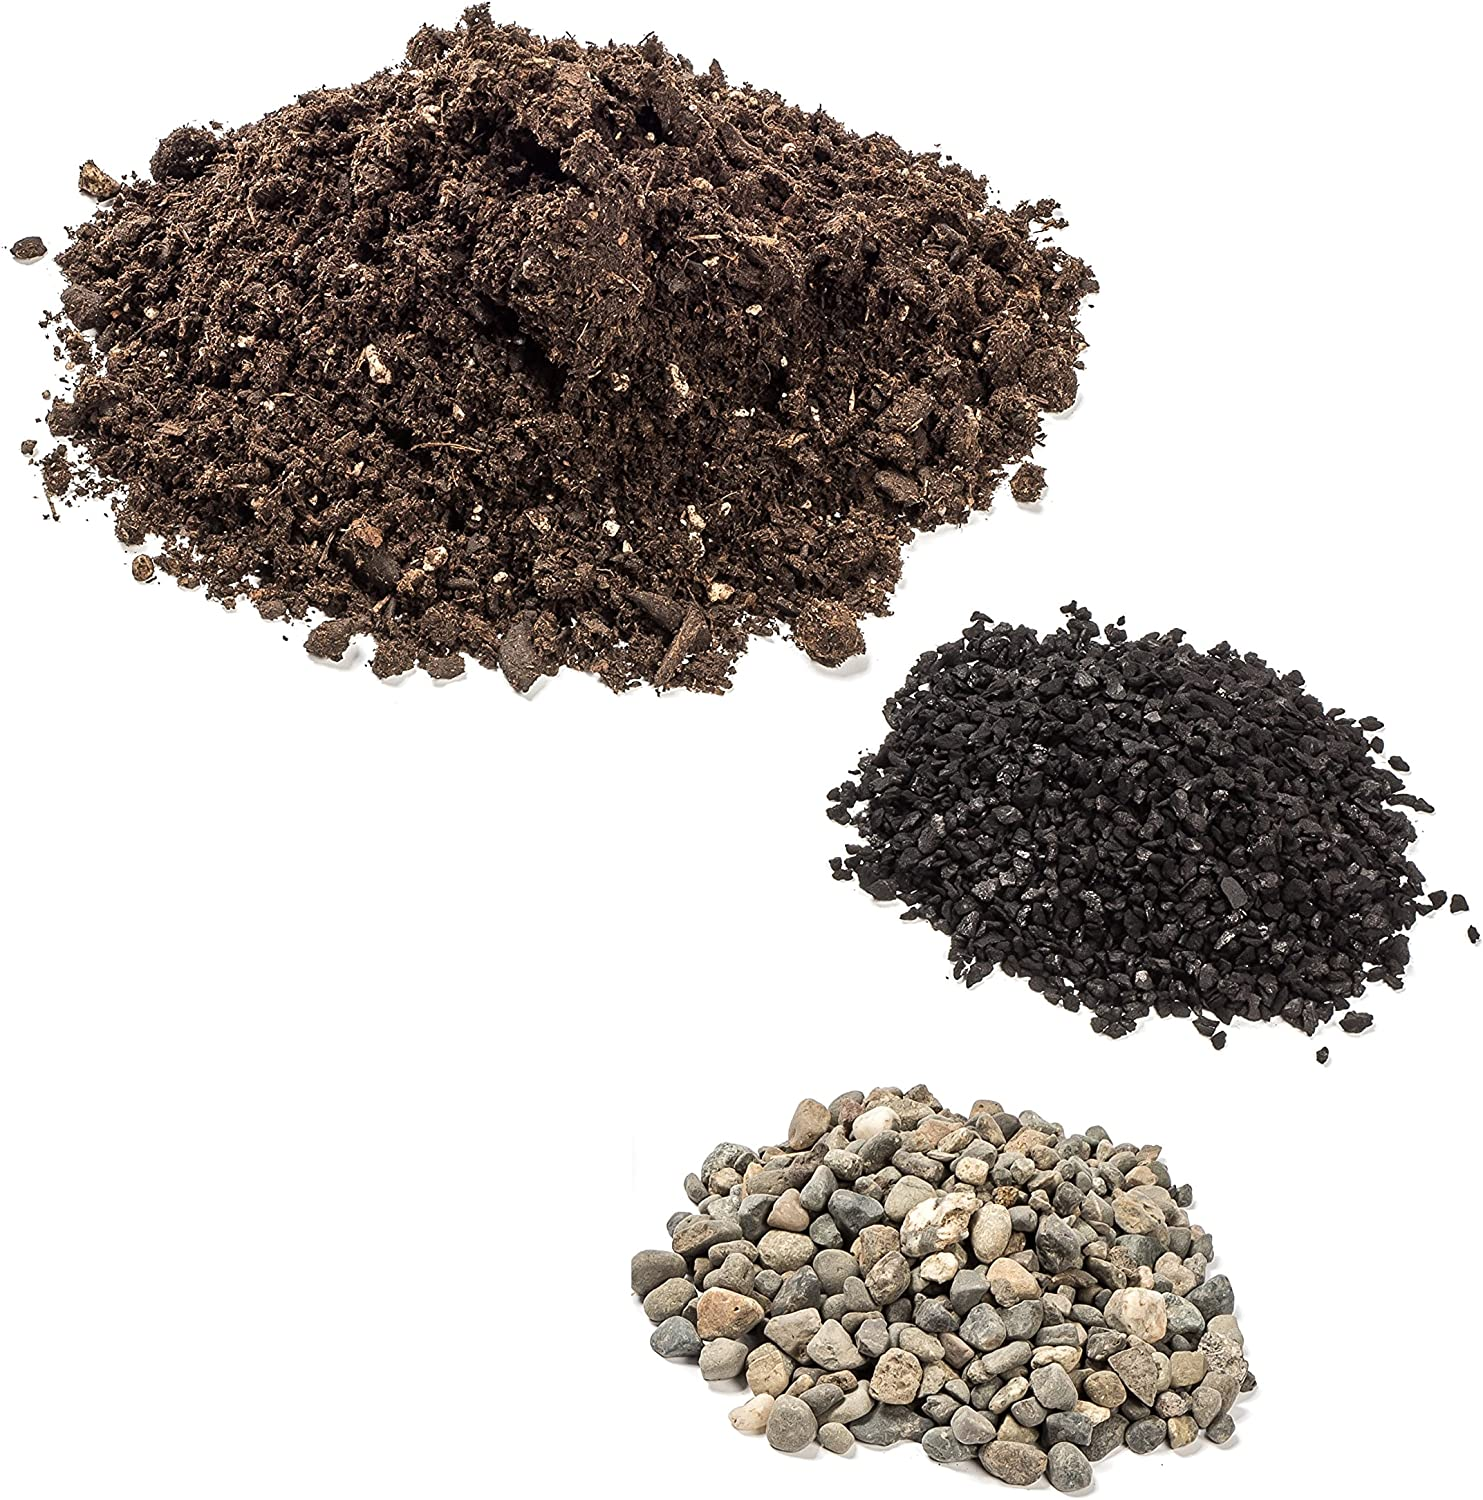 H Potter Terrarium Kit Succulent Soil Supplies for Plants Cactus Planters for Kids with Activated Charcoal from